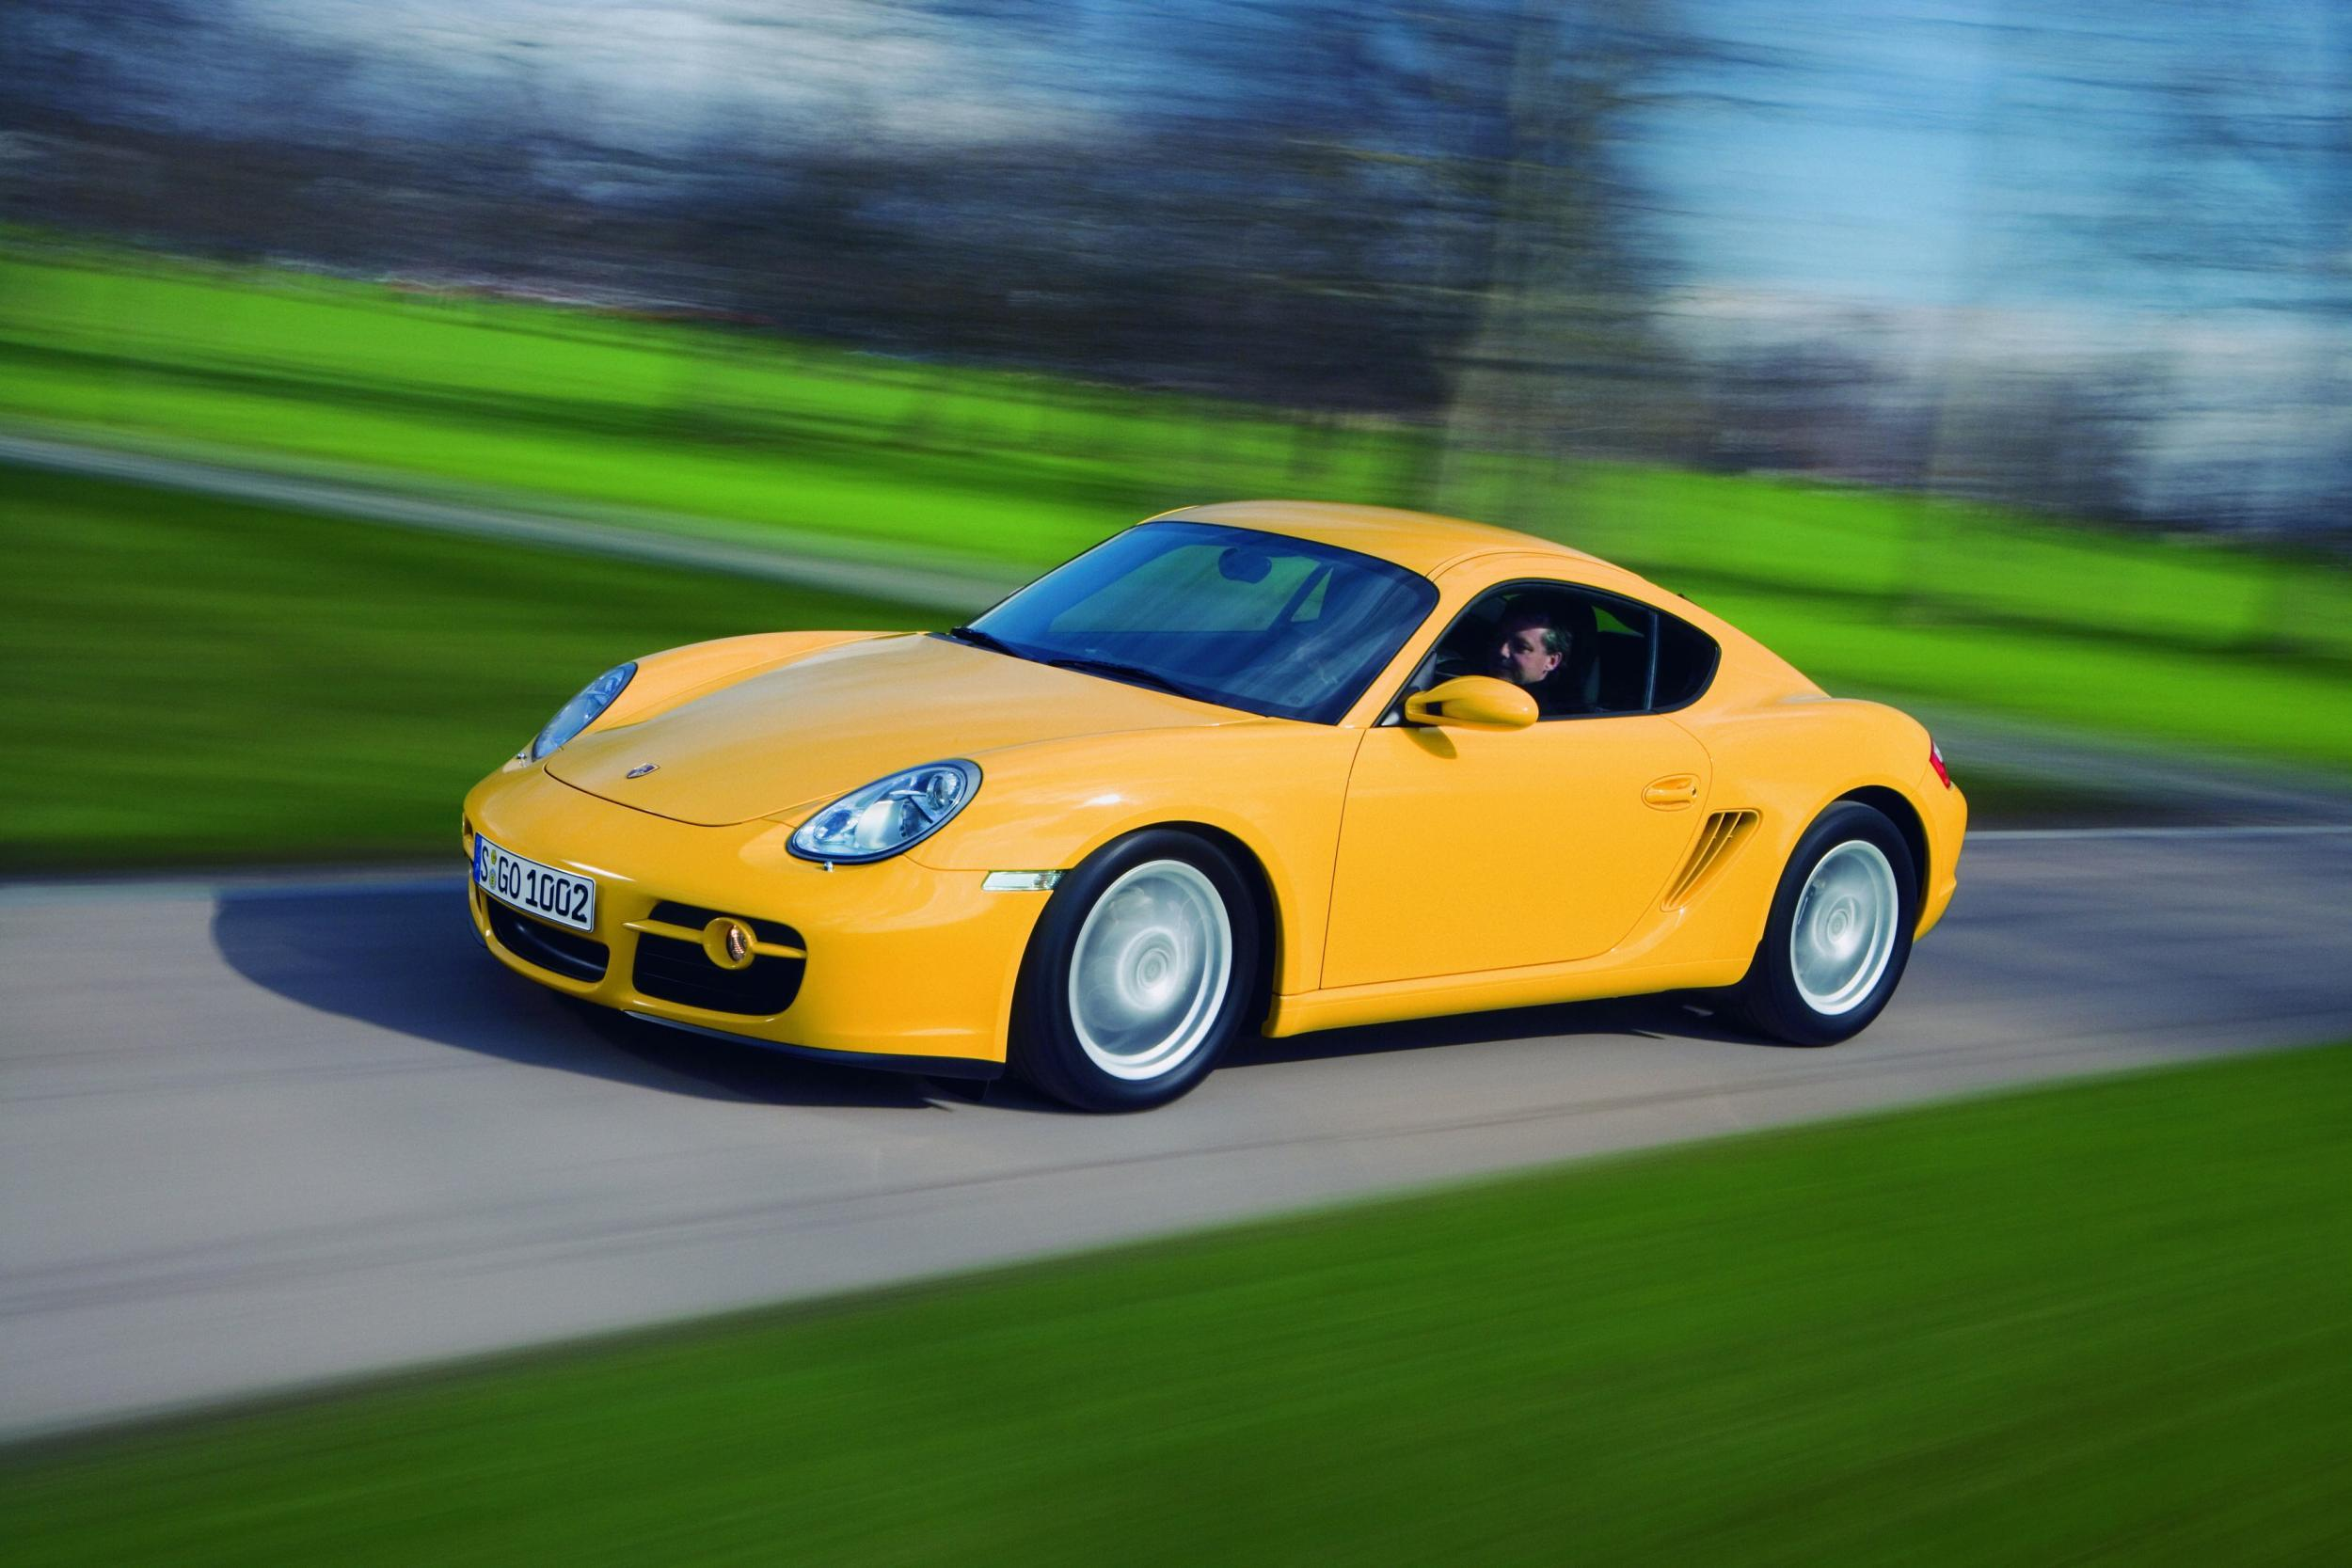 Best Sports Car For The Money Porsche Cayman